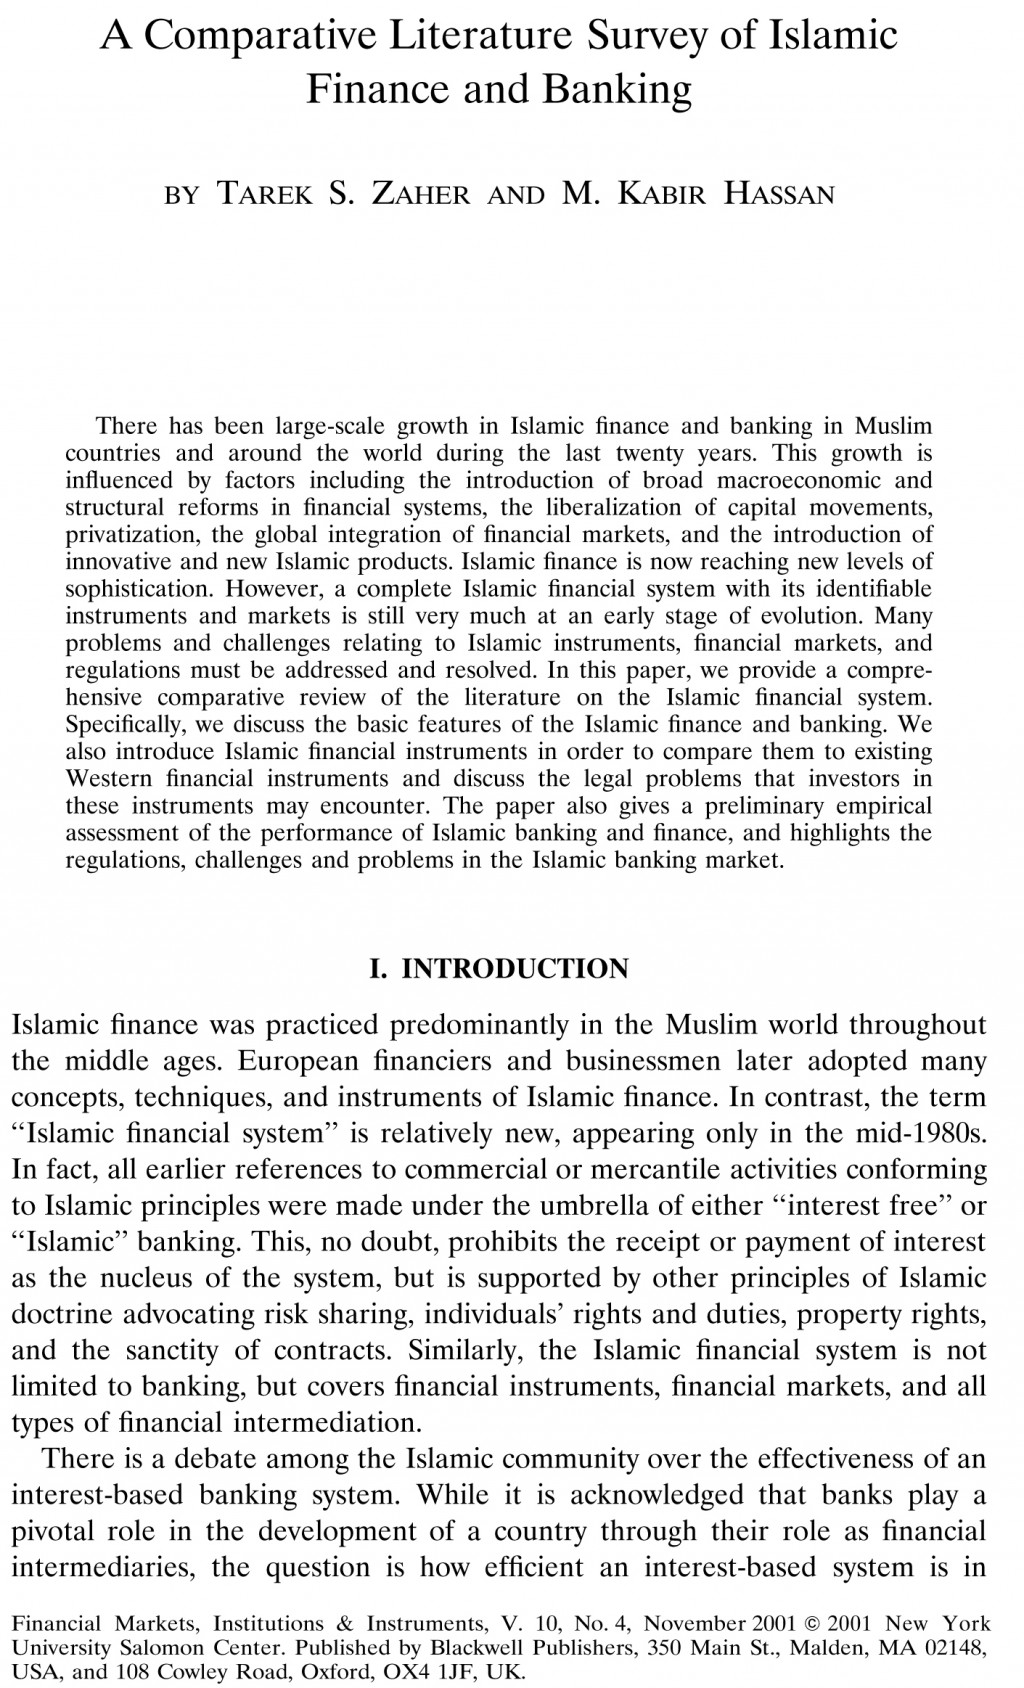 013 Literature Research Paper Help Example Of An Outline For Striking A Literary Large